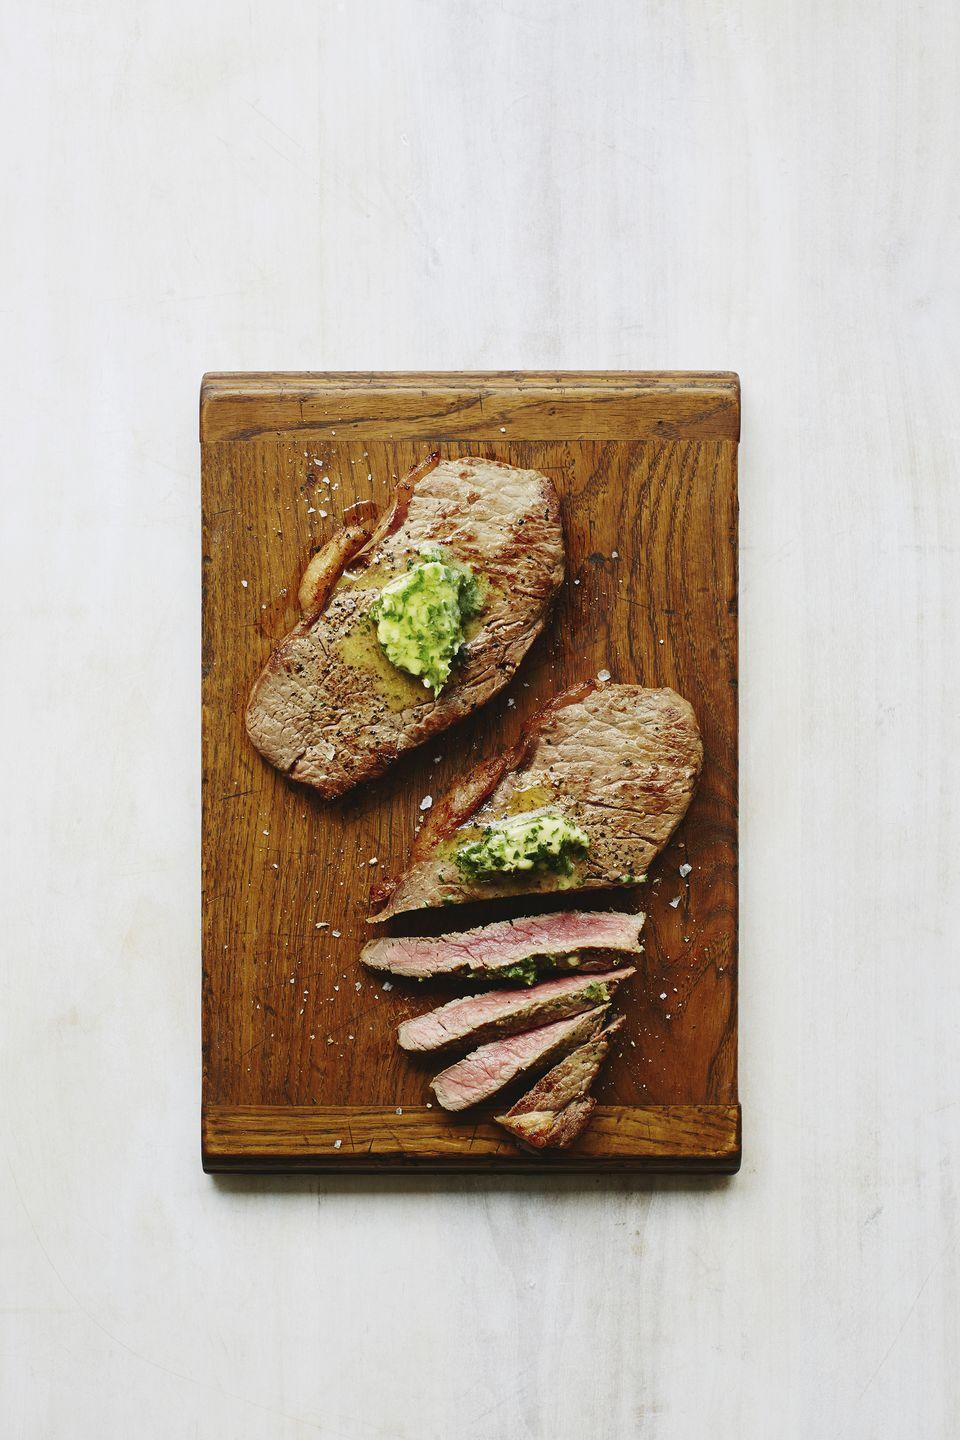 """<p>For a sophisticated starter, grill old-fashioned pickled shallots and garlic with bite-size cubes of peppered and seared beef sirloin, then place them on fresh basil leaves.</p><p><strong><a href=""""https://www.countryliving.com/food-drinks/recipes/a1009/pickled-garlic-shallots-pearl-onions-3116/"""" rel=""""nofollow noopener"""" target=""""_blank"""" data-ylk=""""slk:Get the recipe"""" class=""""link rapid-noclick-resp"""">Get the recipe</a>.</strong></p>"""